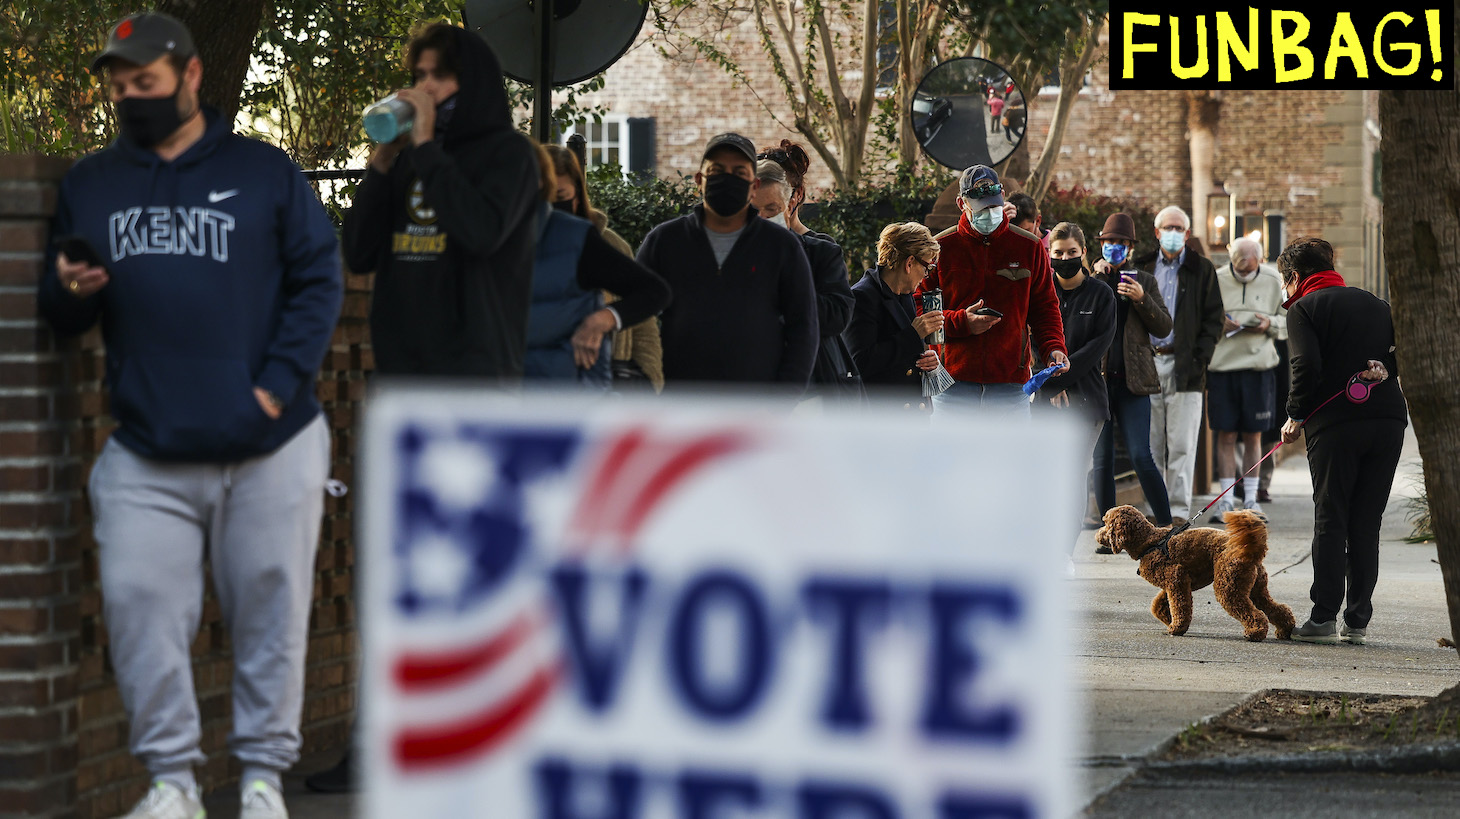 CHARLESTON, SC - NOVEMBER 03: People line up to vote at the Hazel Parker Playground on Election Day on November 3, 2020 in Charleston, United States. After a record-breaking early voting turnout, Americans head to the polls on the last day to cast their vote for incumbent U.S. President Donald Trump or Democratic nominee Joe Biden in the 2020 presidential election. (Photo by Michael Ciaglo/Getty Images)